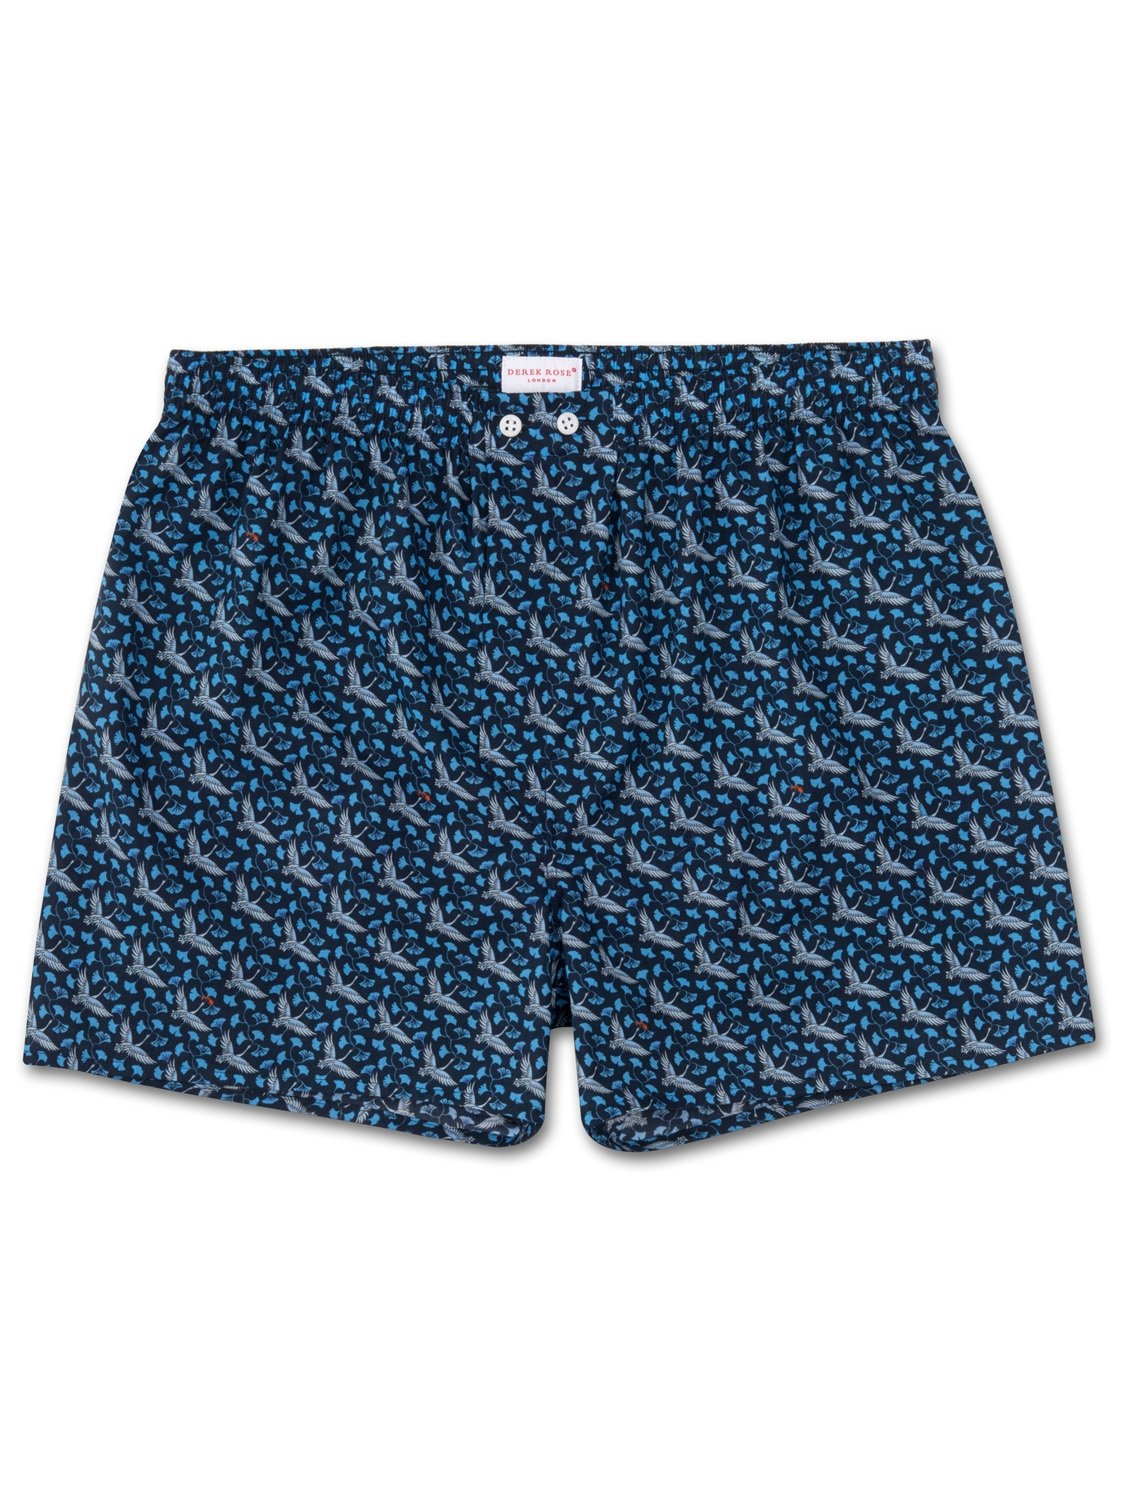 Men's Classic Fit Boxer Shorts Ledbury 15 Cotton Batiste Navy